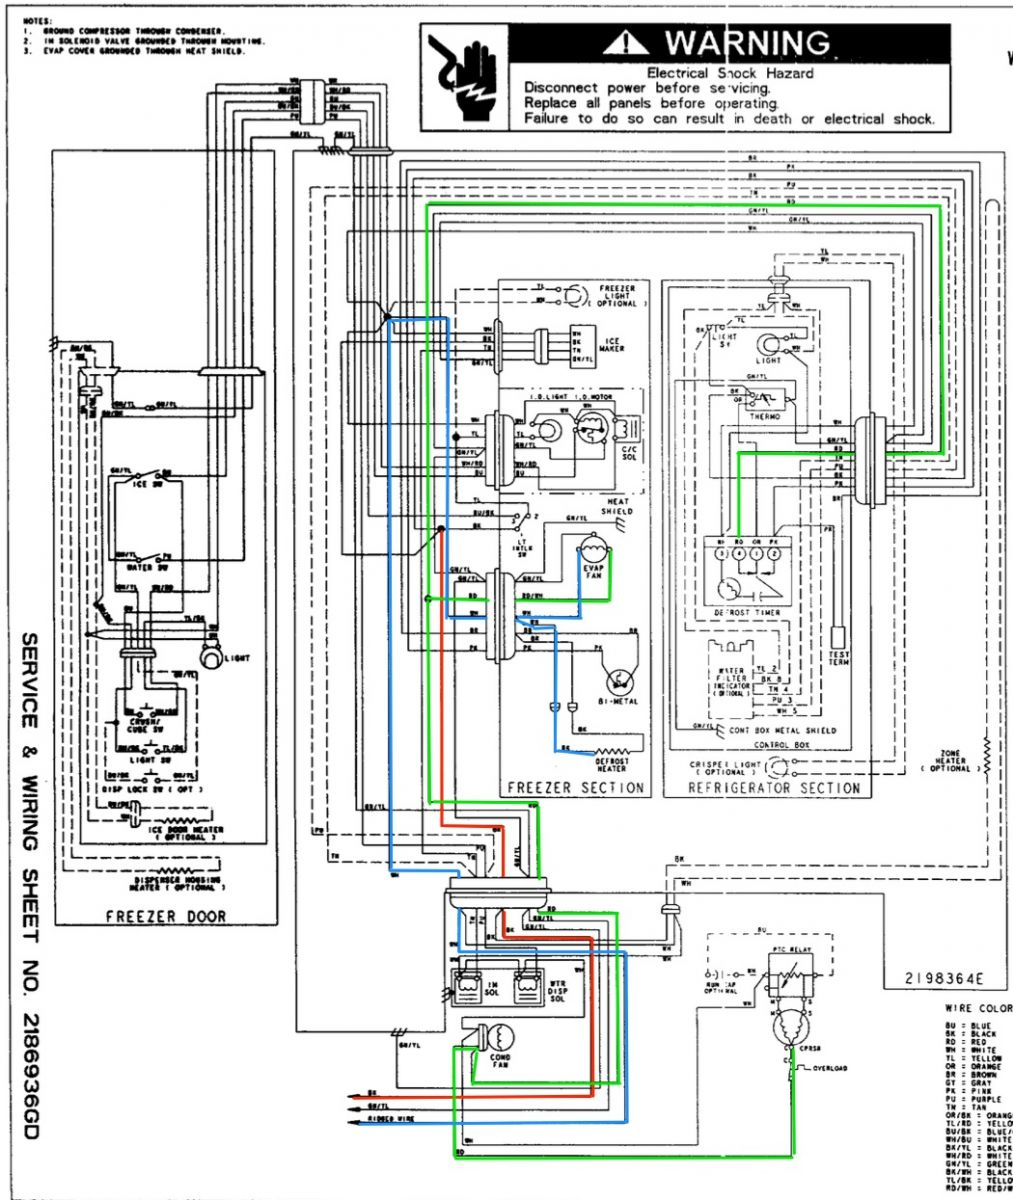 gallery_4_4_346879 whirlpool ed25rfxfw01 refrigerator wiring diagram the whirlpool refrigerator wiring schematic at n-0.co